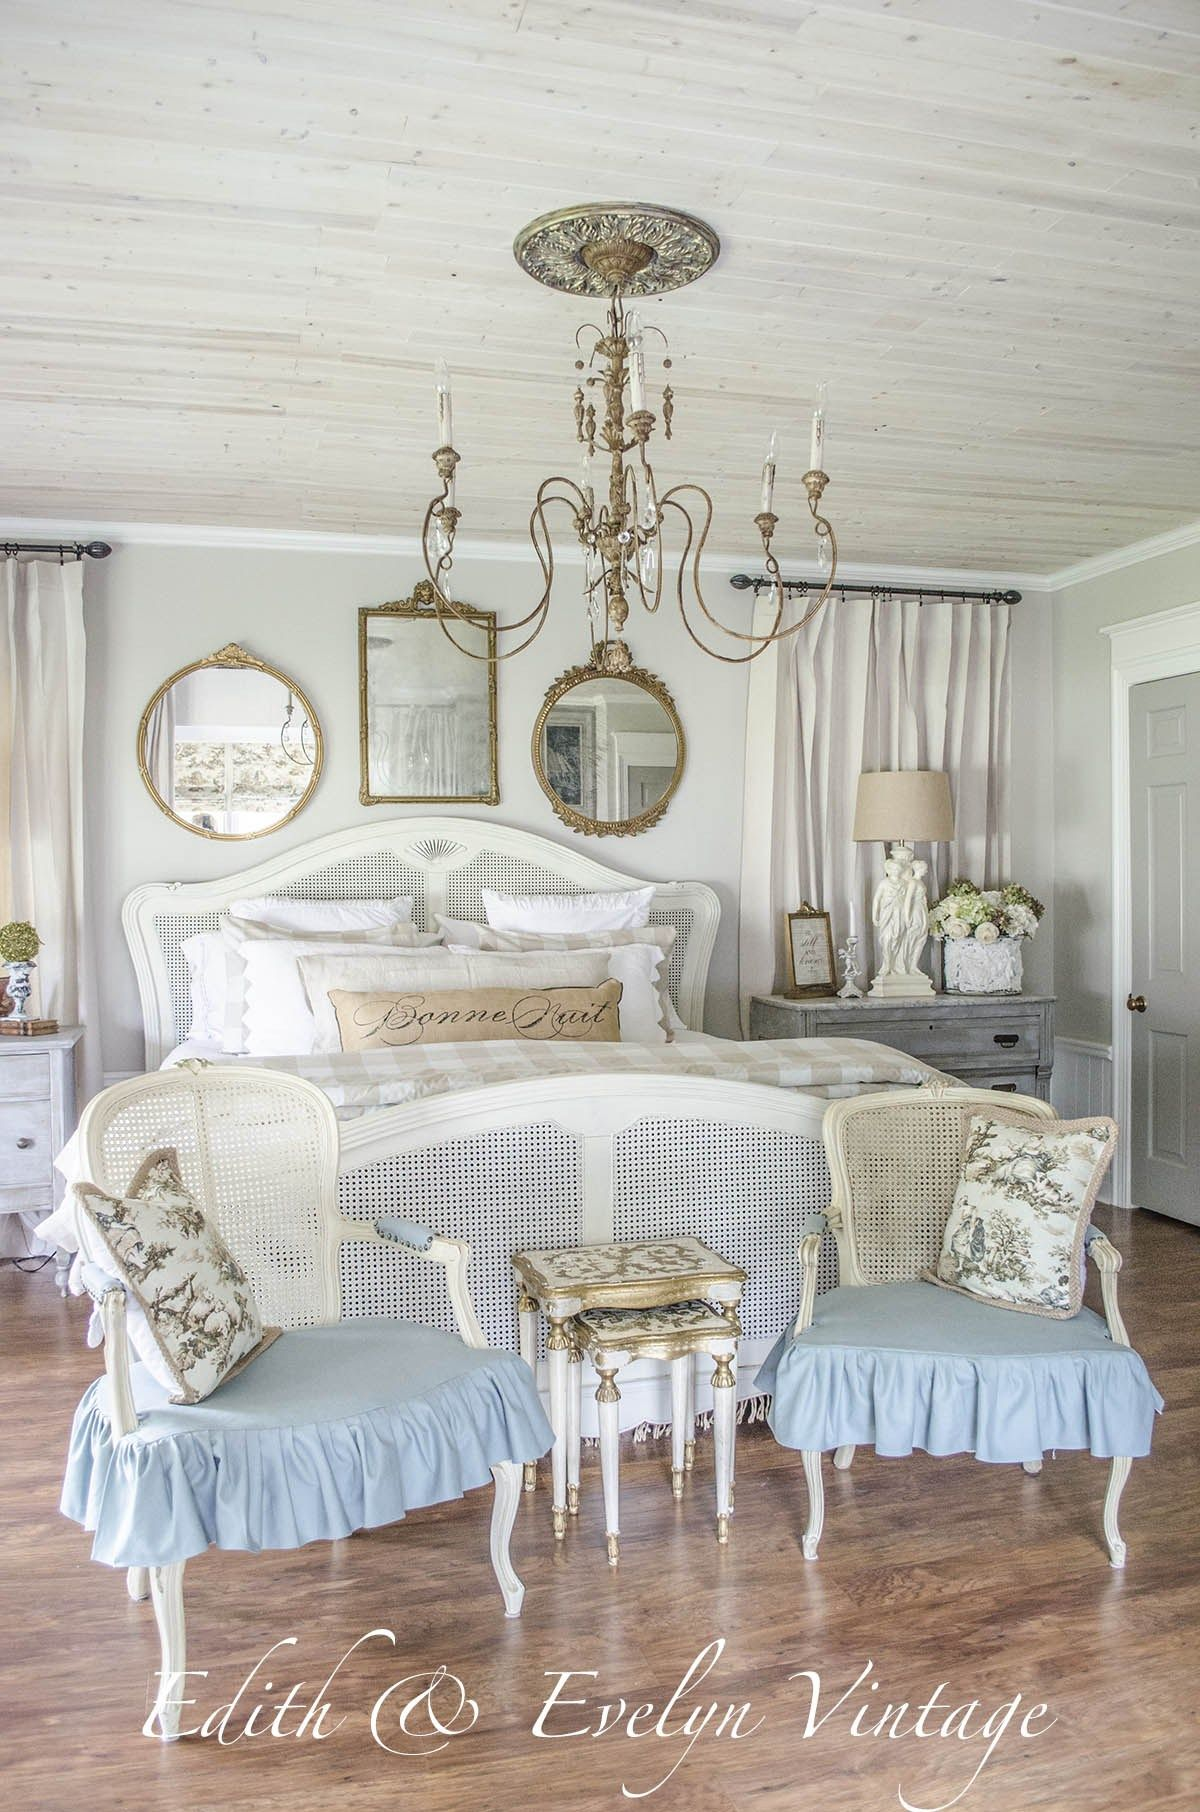 for full provincial sets setsfrench style size stupendous of bedroom photos white furniturefrench ideas french frenchle furniture country sale